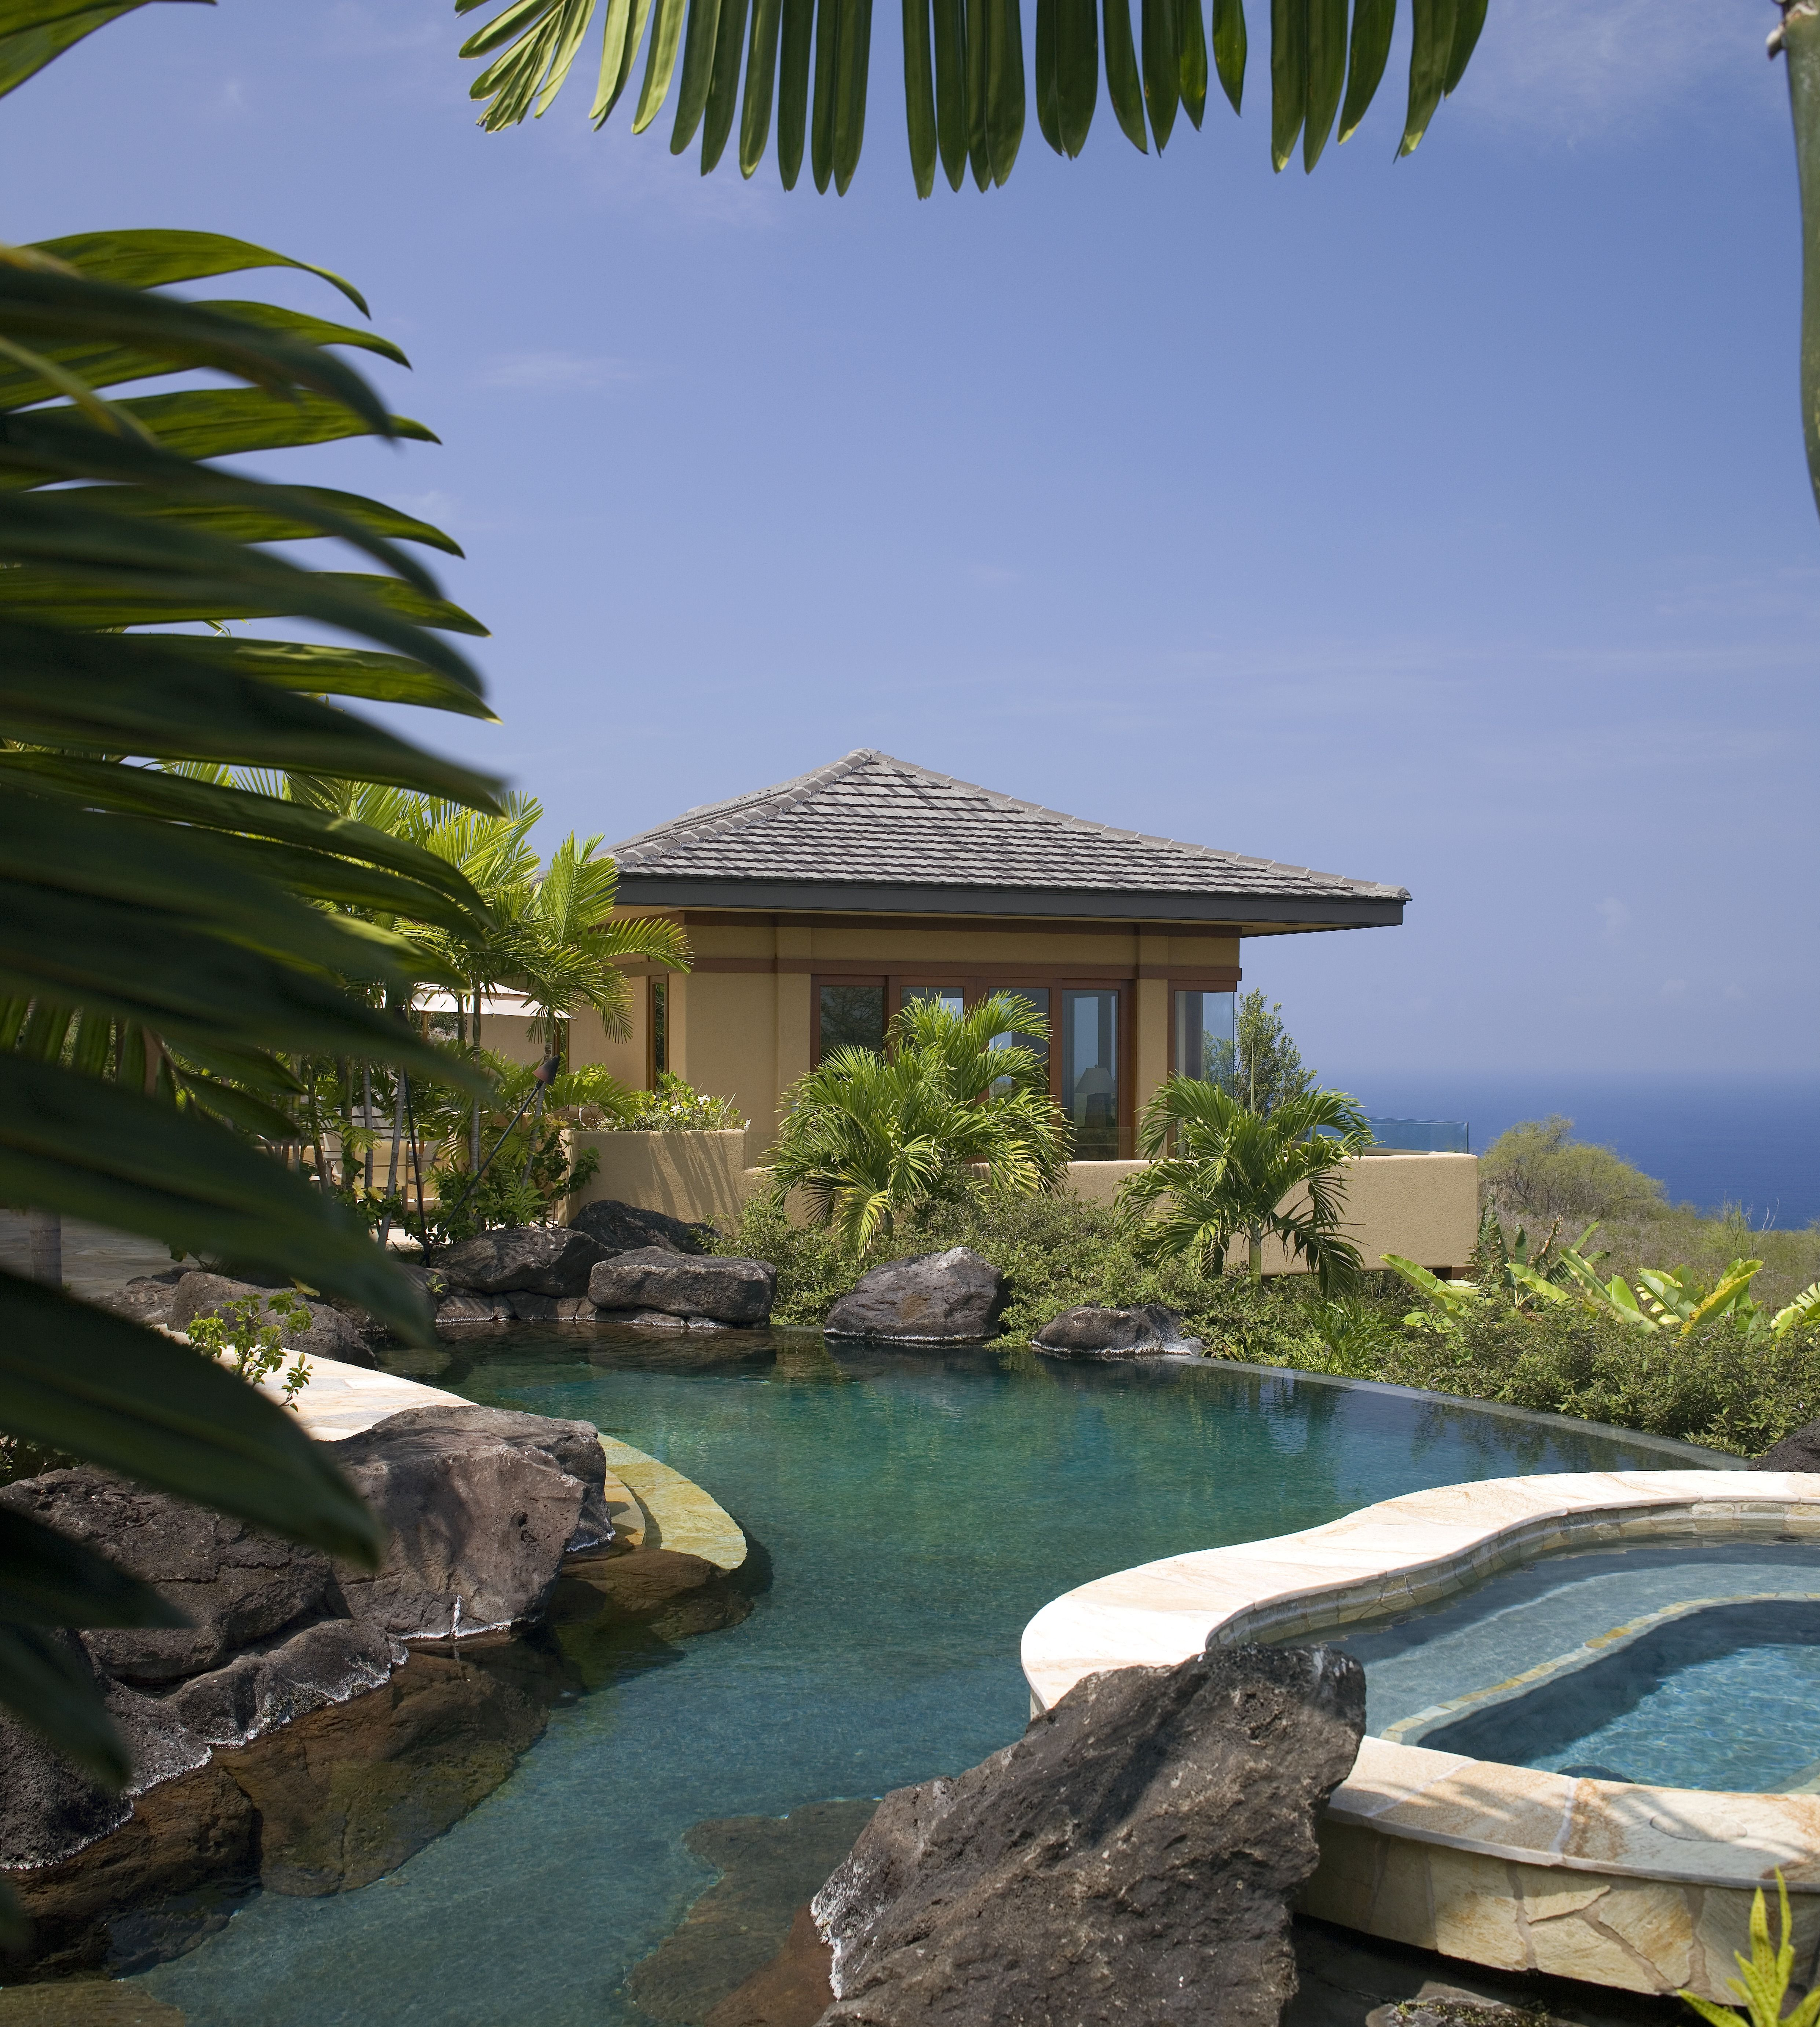 Benefits Of A Swimming Pool | Hot tubs, Pool installation and ...